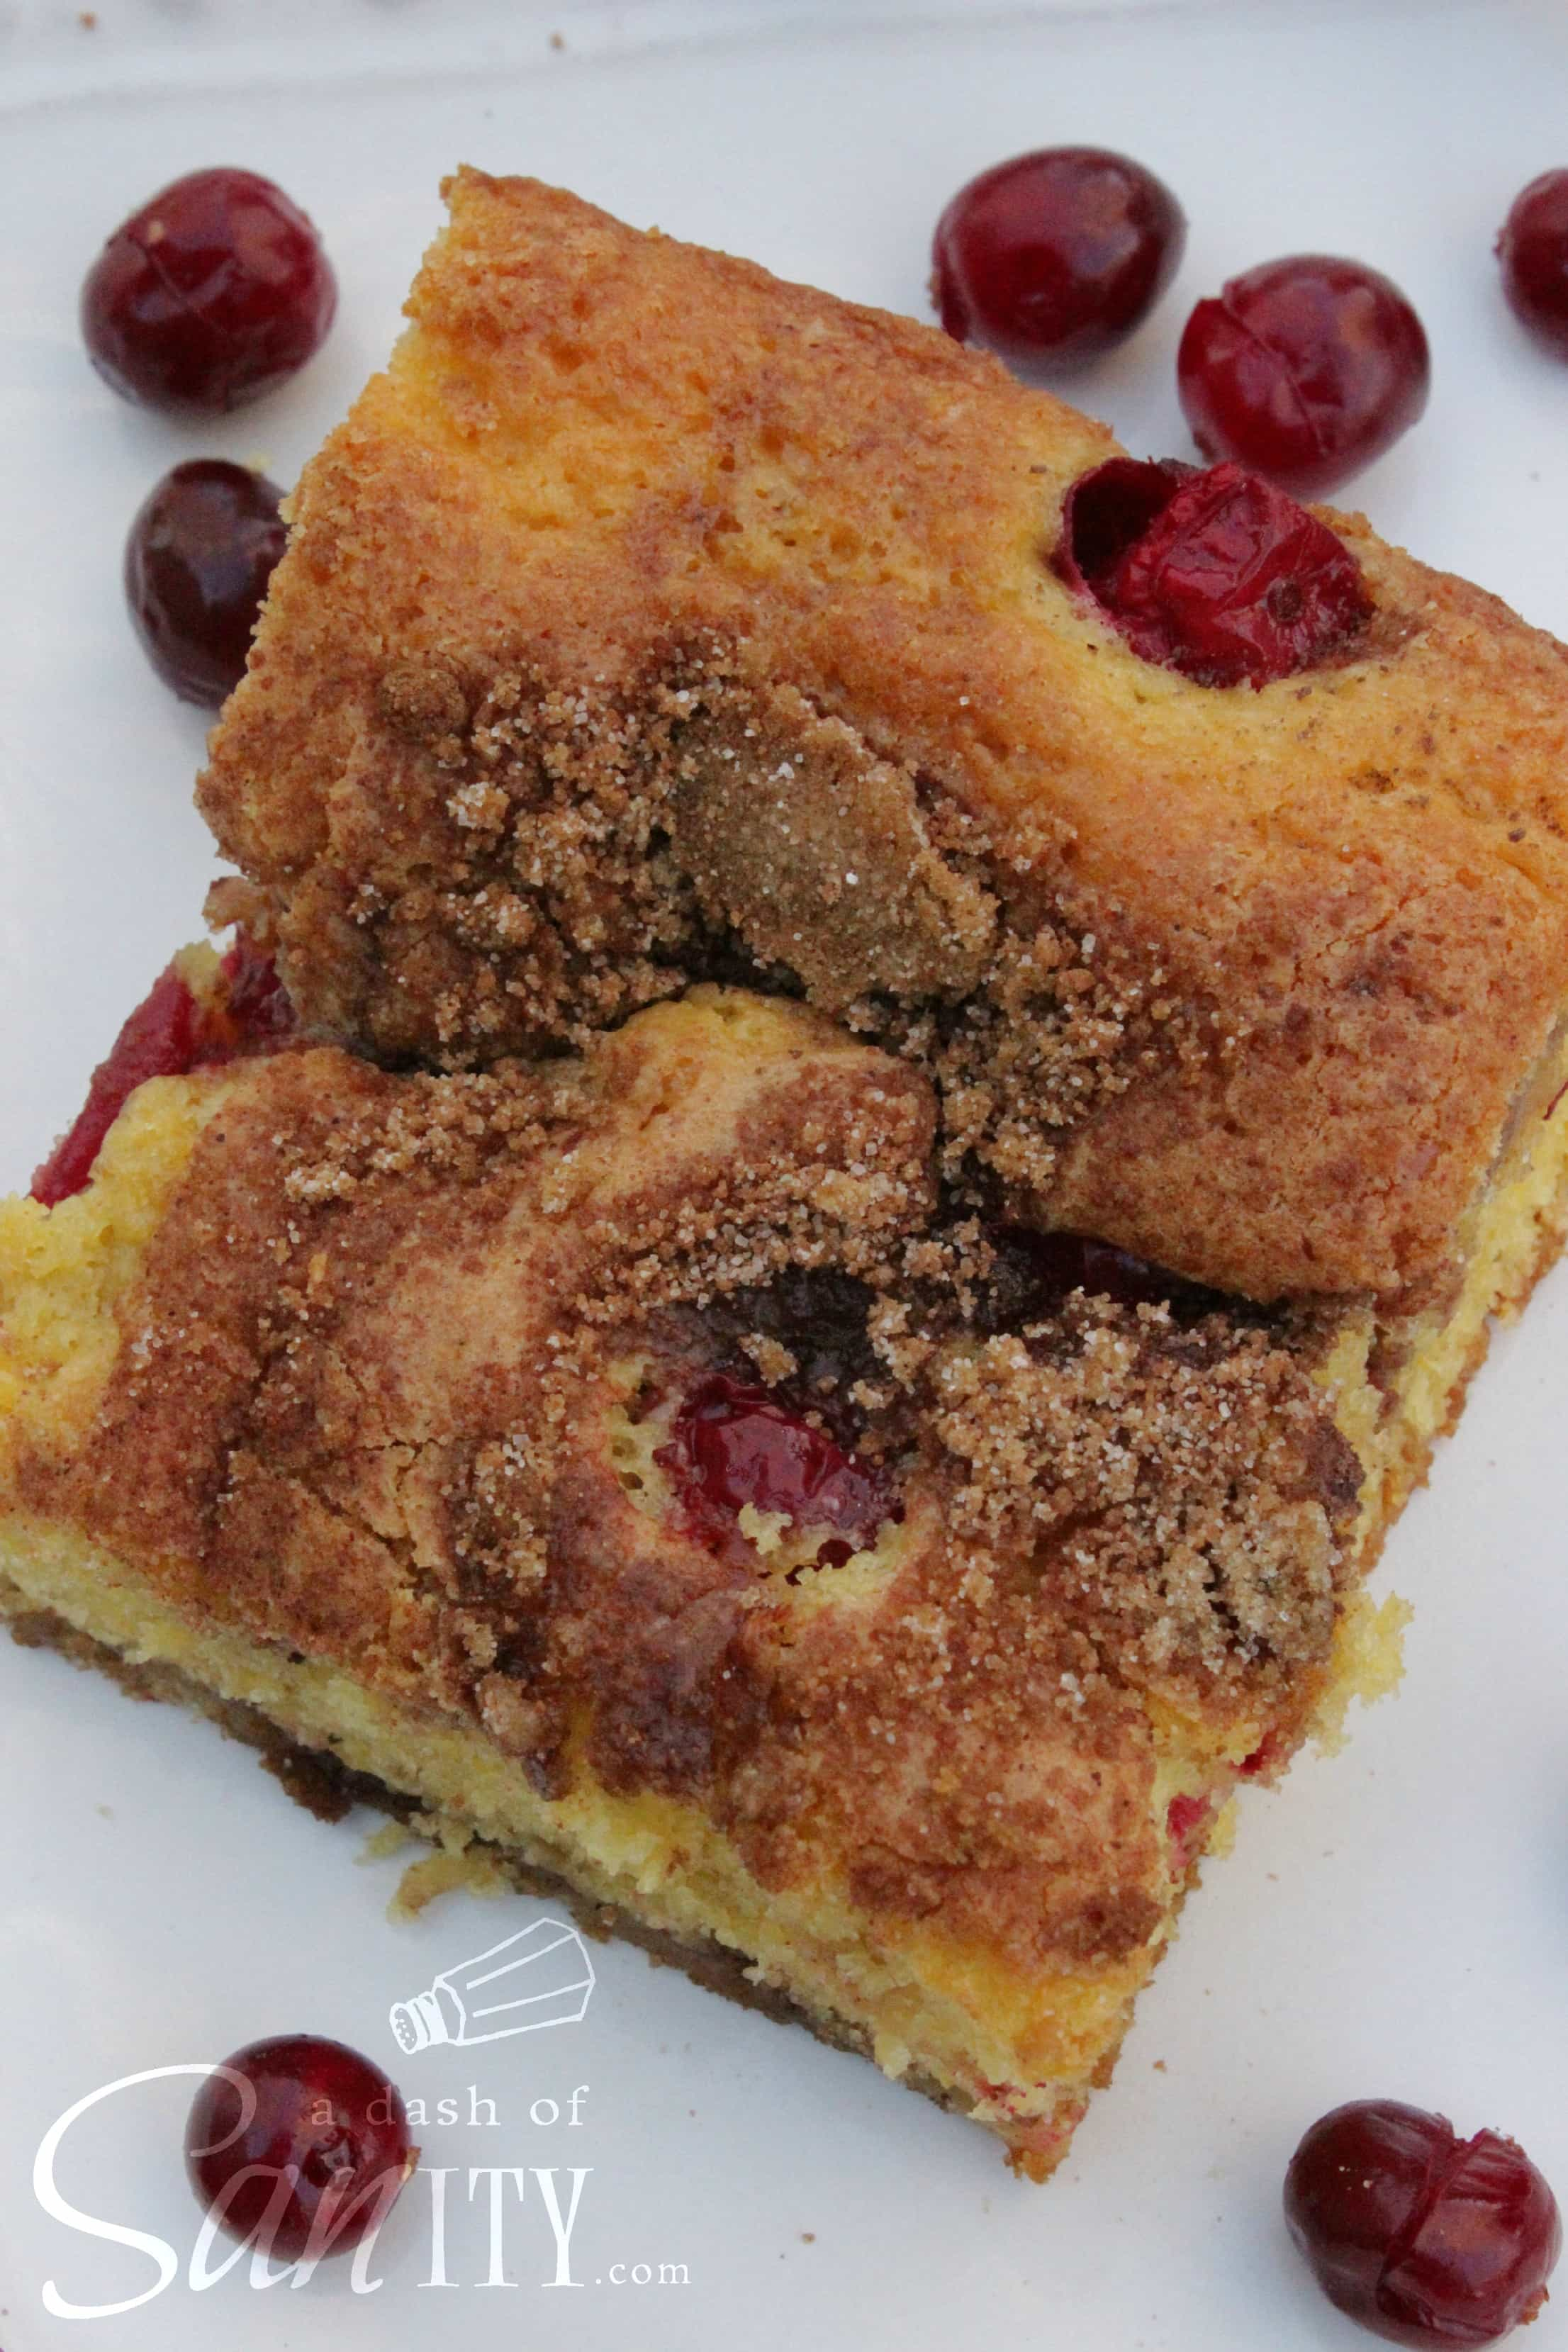 Cranberry-Orange Coffee Cake - A Dash of Sanity